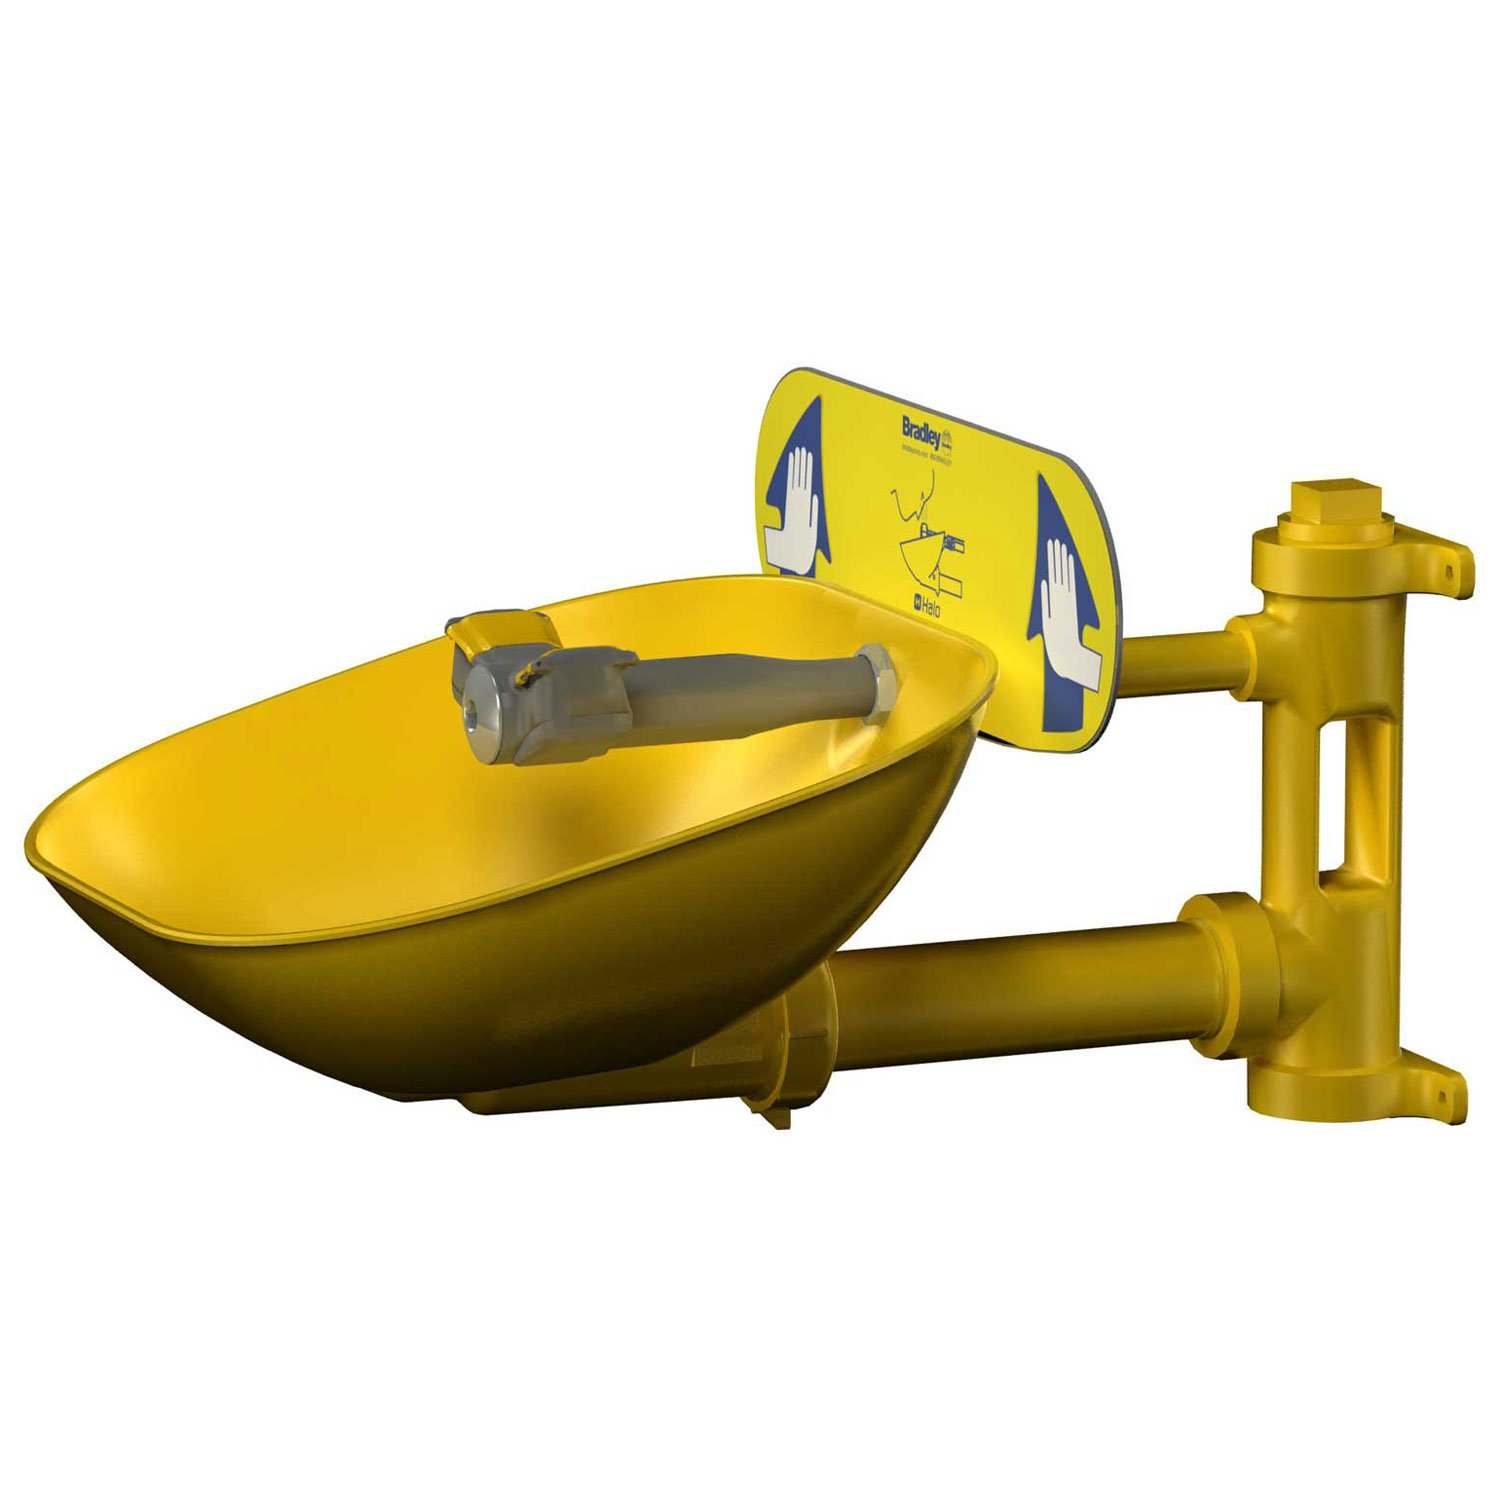 Bradley S19224EW Safety Eye/Face Wash with Plastic Bowl, Wall Mount, 0.4 GPM Water Flow, 13'' Width x 19-11/16'' Depth